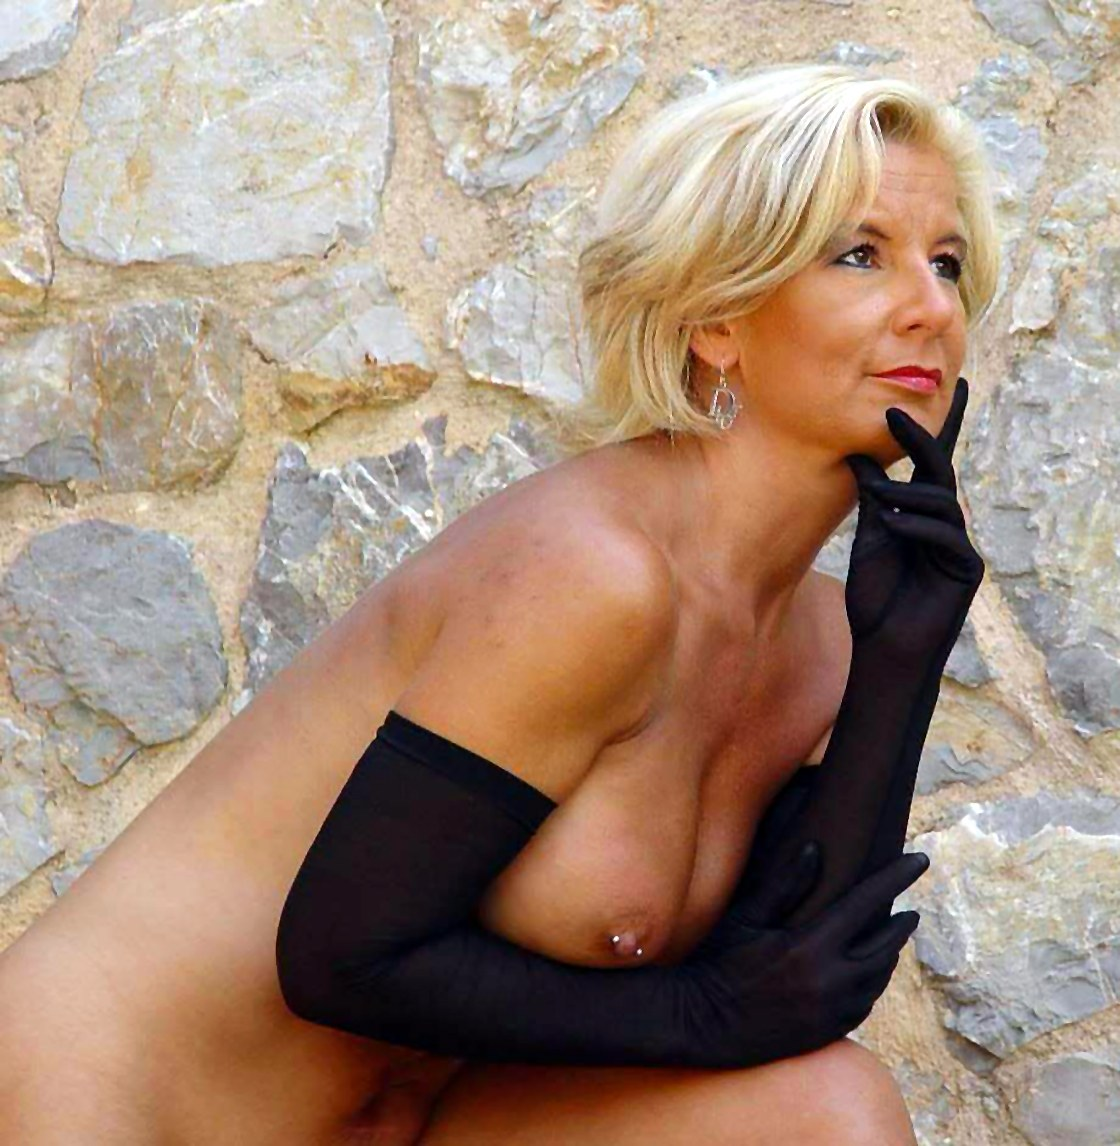 A mature sexy blonde has a pircing in her nipples